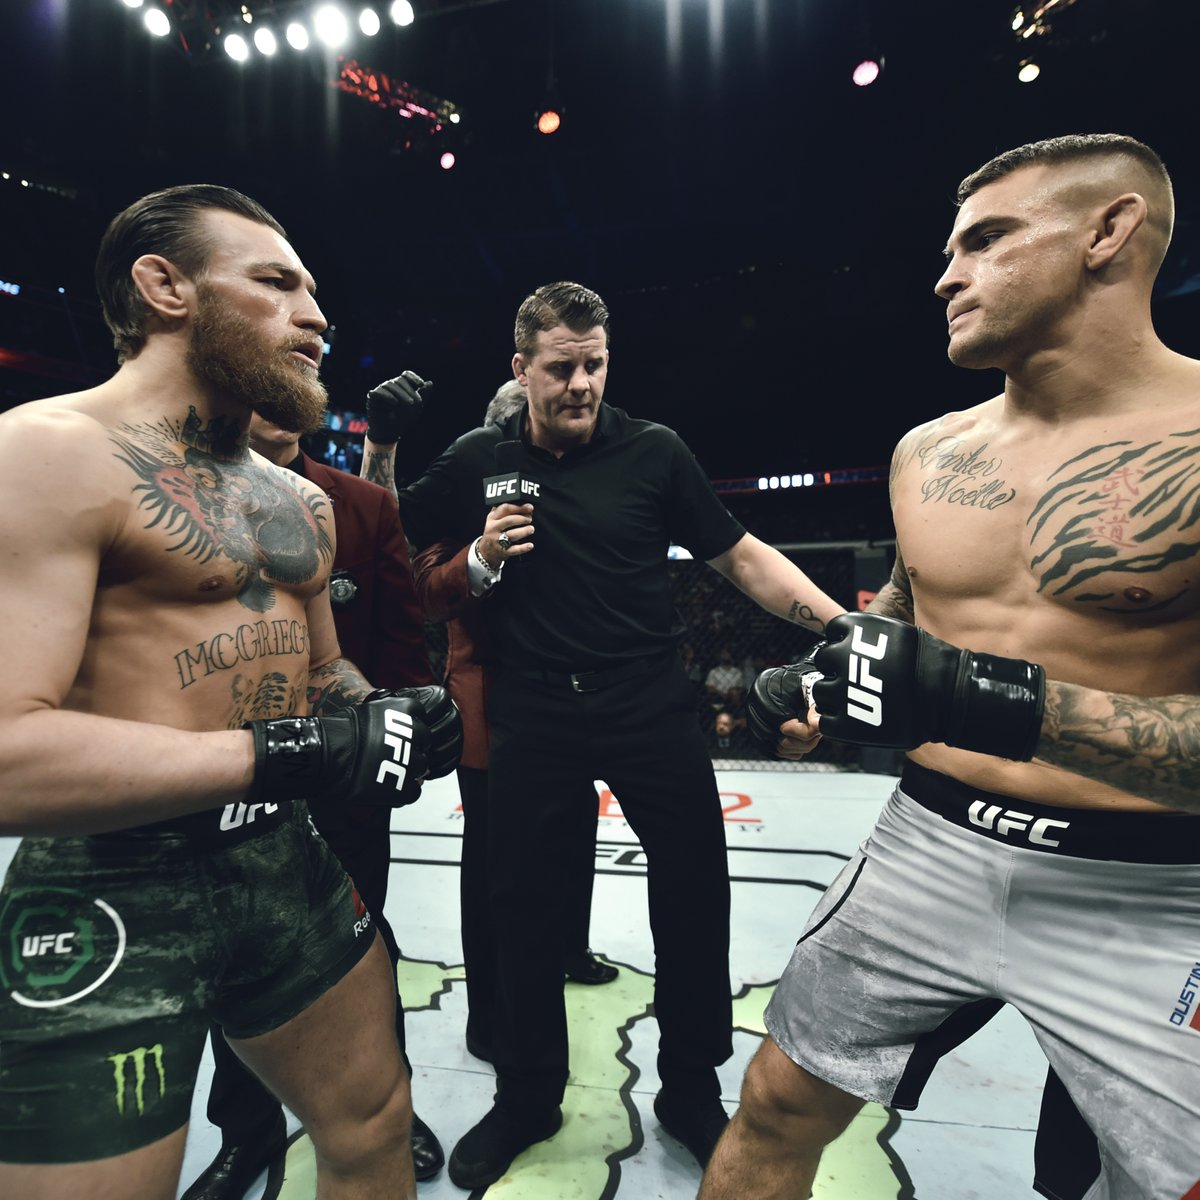 60 Days to Go... #UFC257 https://t.co/OHdW01oZHo